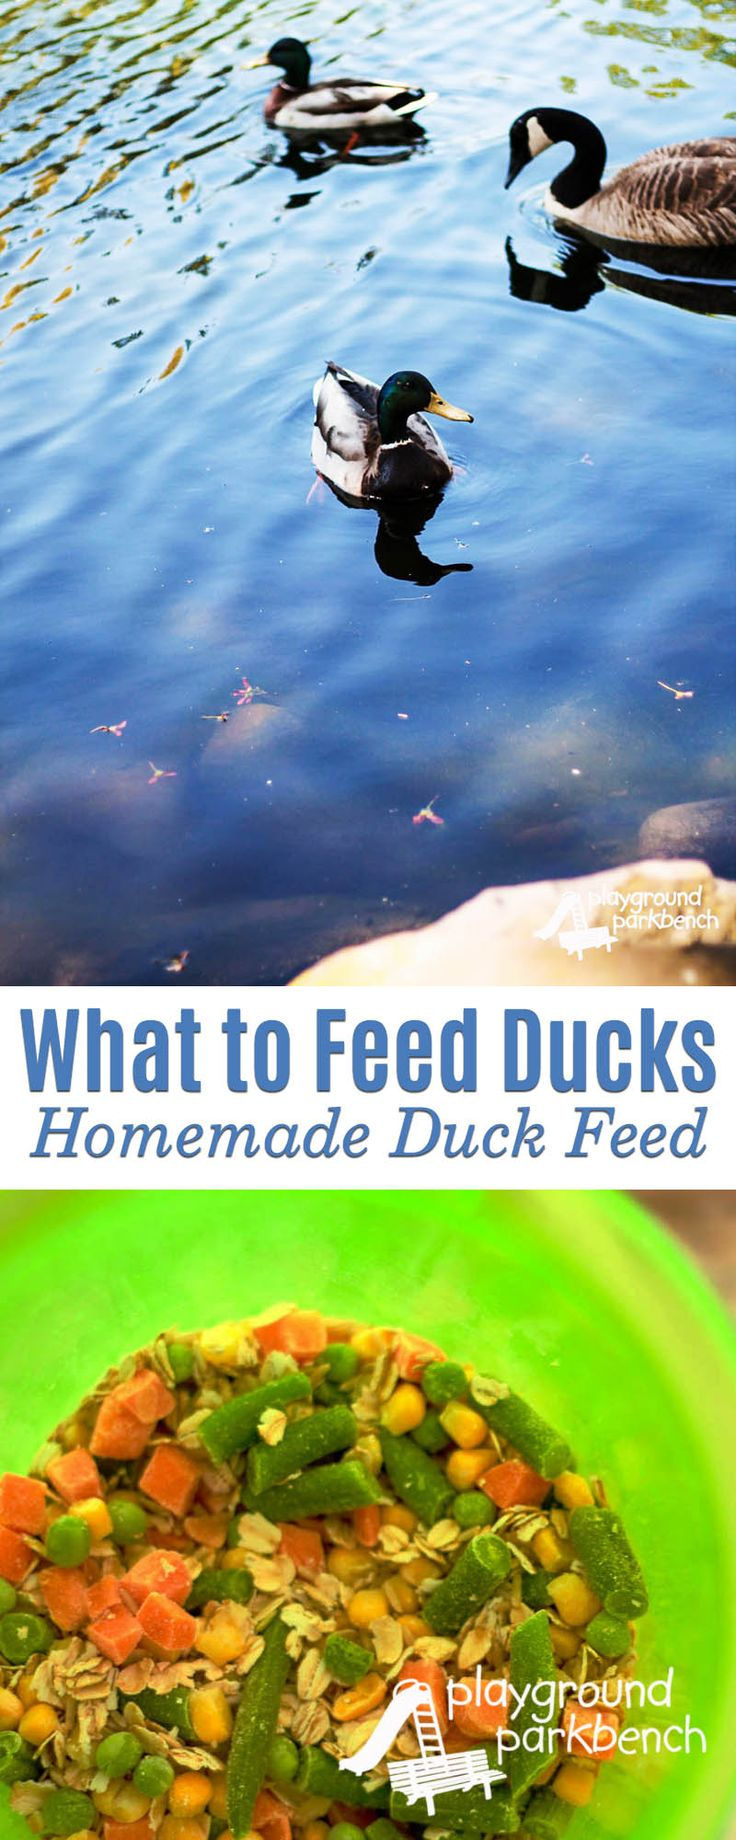 For generations, children have been reading Make Way for Ducklings, inspiring countless trips to the local pond to feed and visit the ducks.  What most don't know is that bread and crackers are the worst food to feed these birds.  Learn why and what you should feed ducks, along with a healthy homemade duck feed recipe | Ducks | Children's Books | Robert McClosky | Preschool |